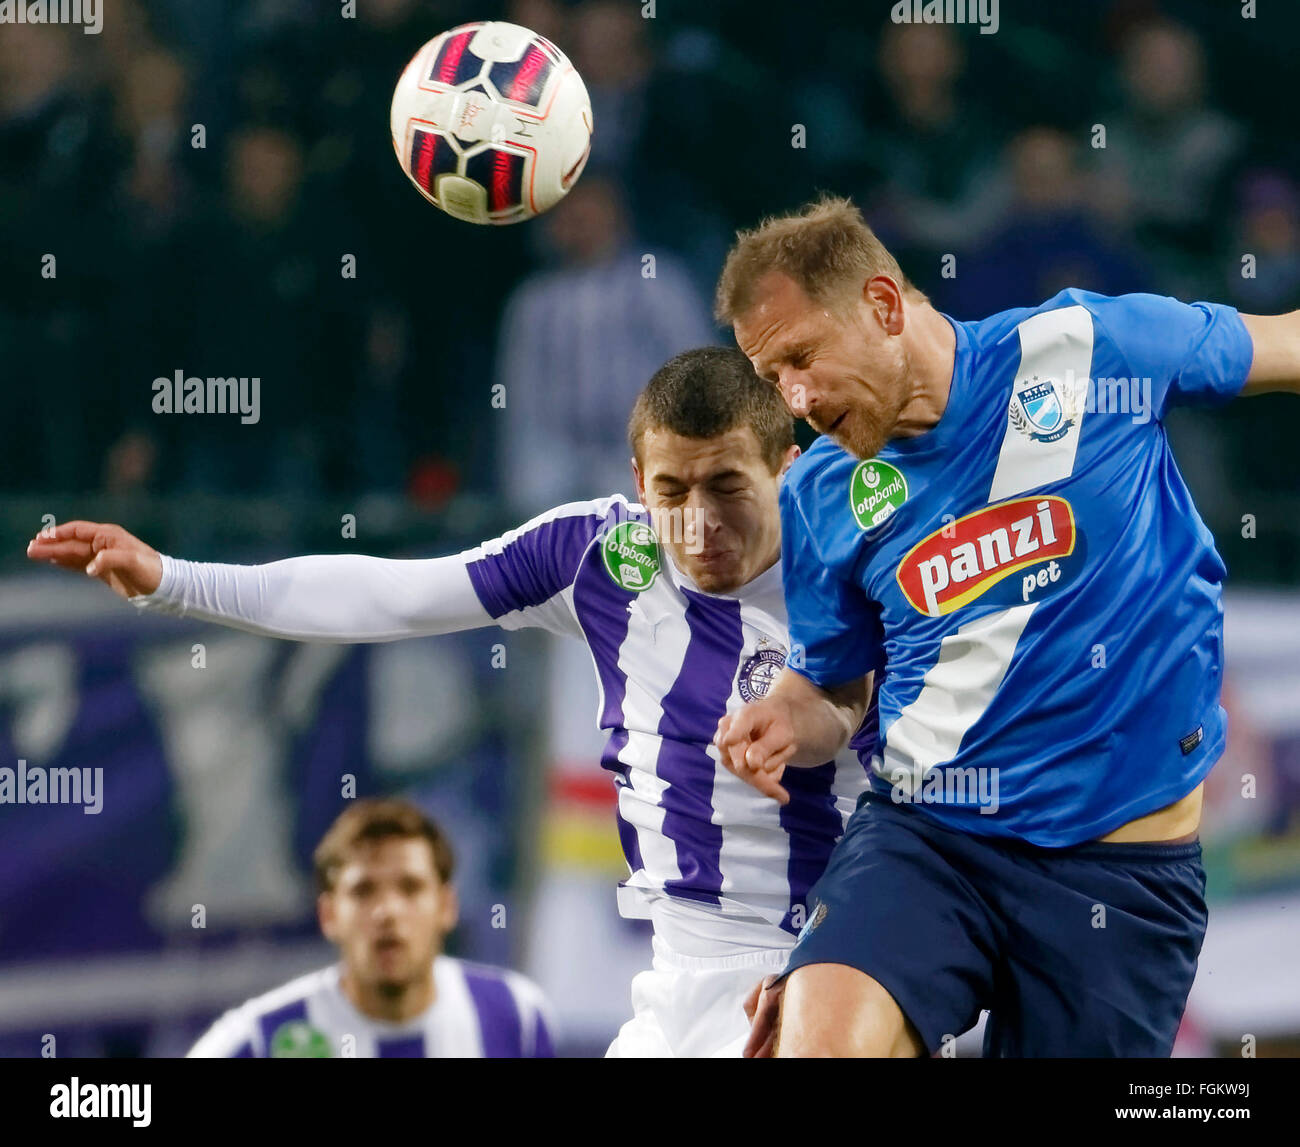 Budapest, Hungary. 20th February,  2016. Air battle between Kylian Hazard of Ujpest (l) and Sandor Torghelle of - Stock Image